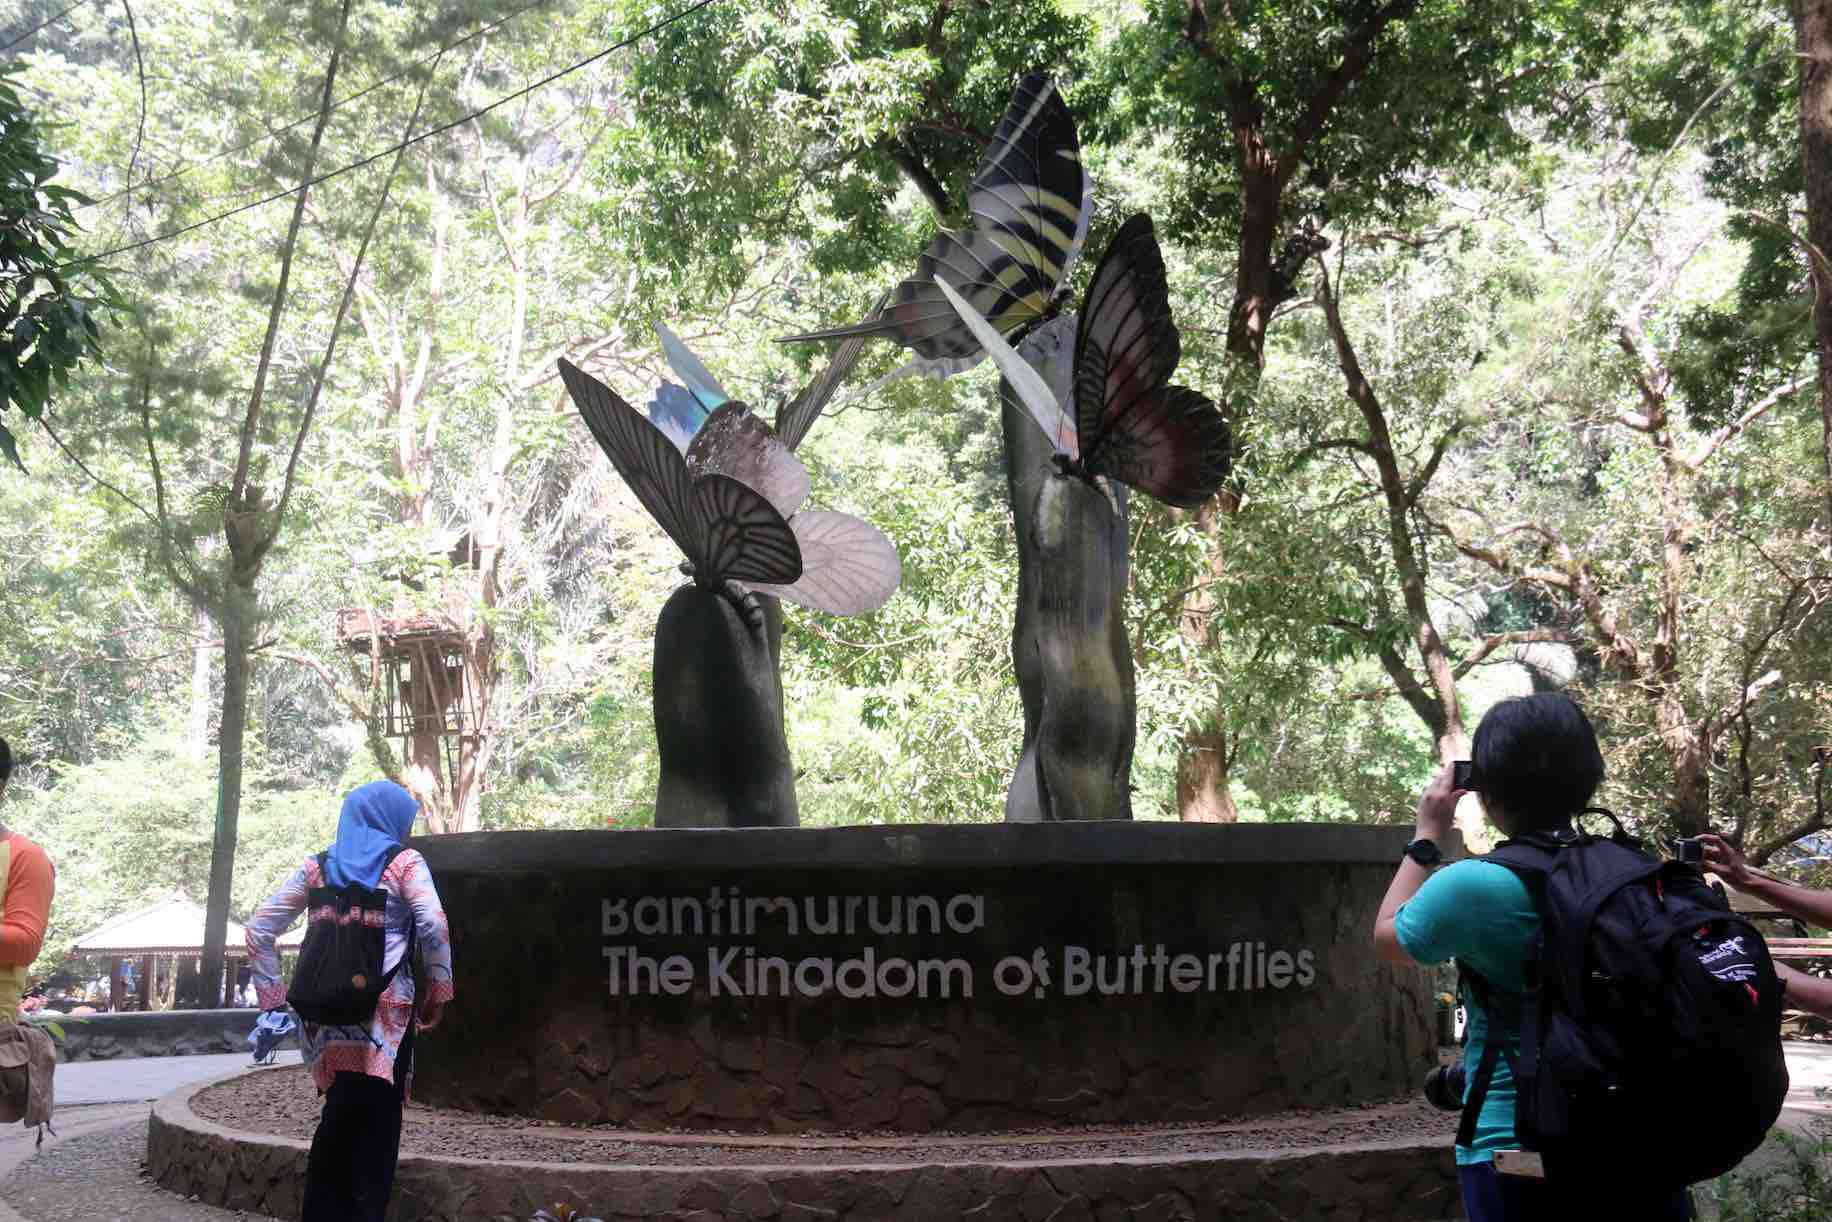 Kingdom Of Butterflies - AspirantSG